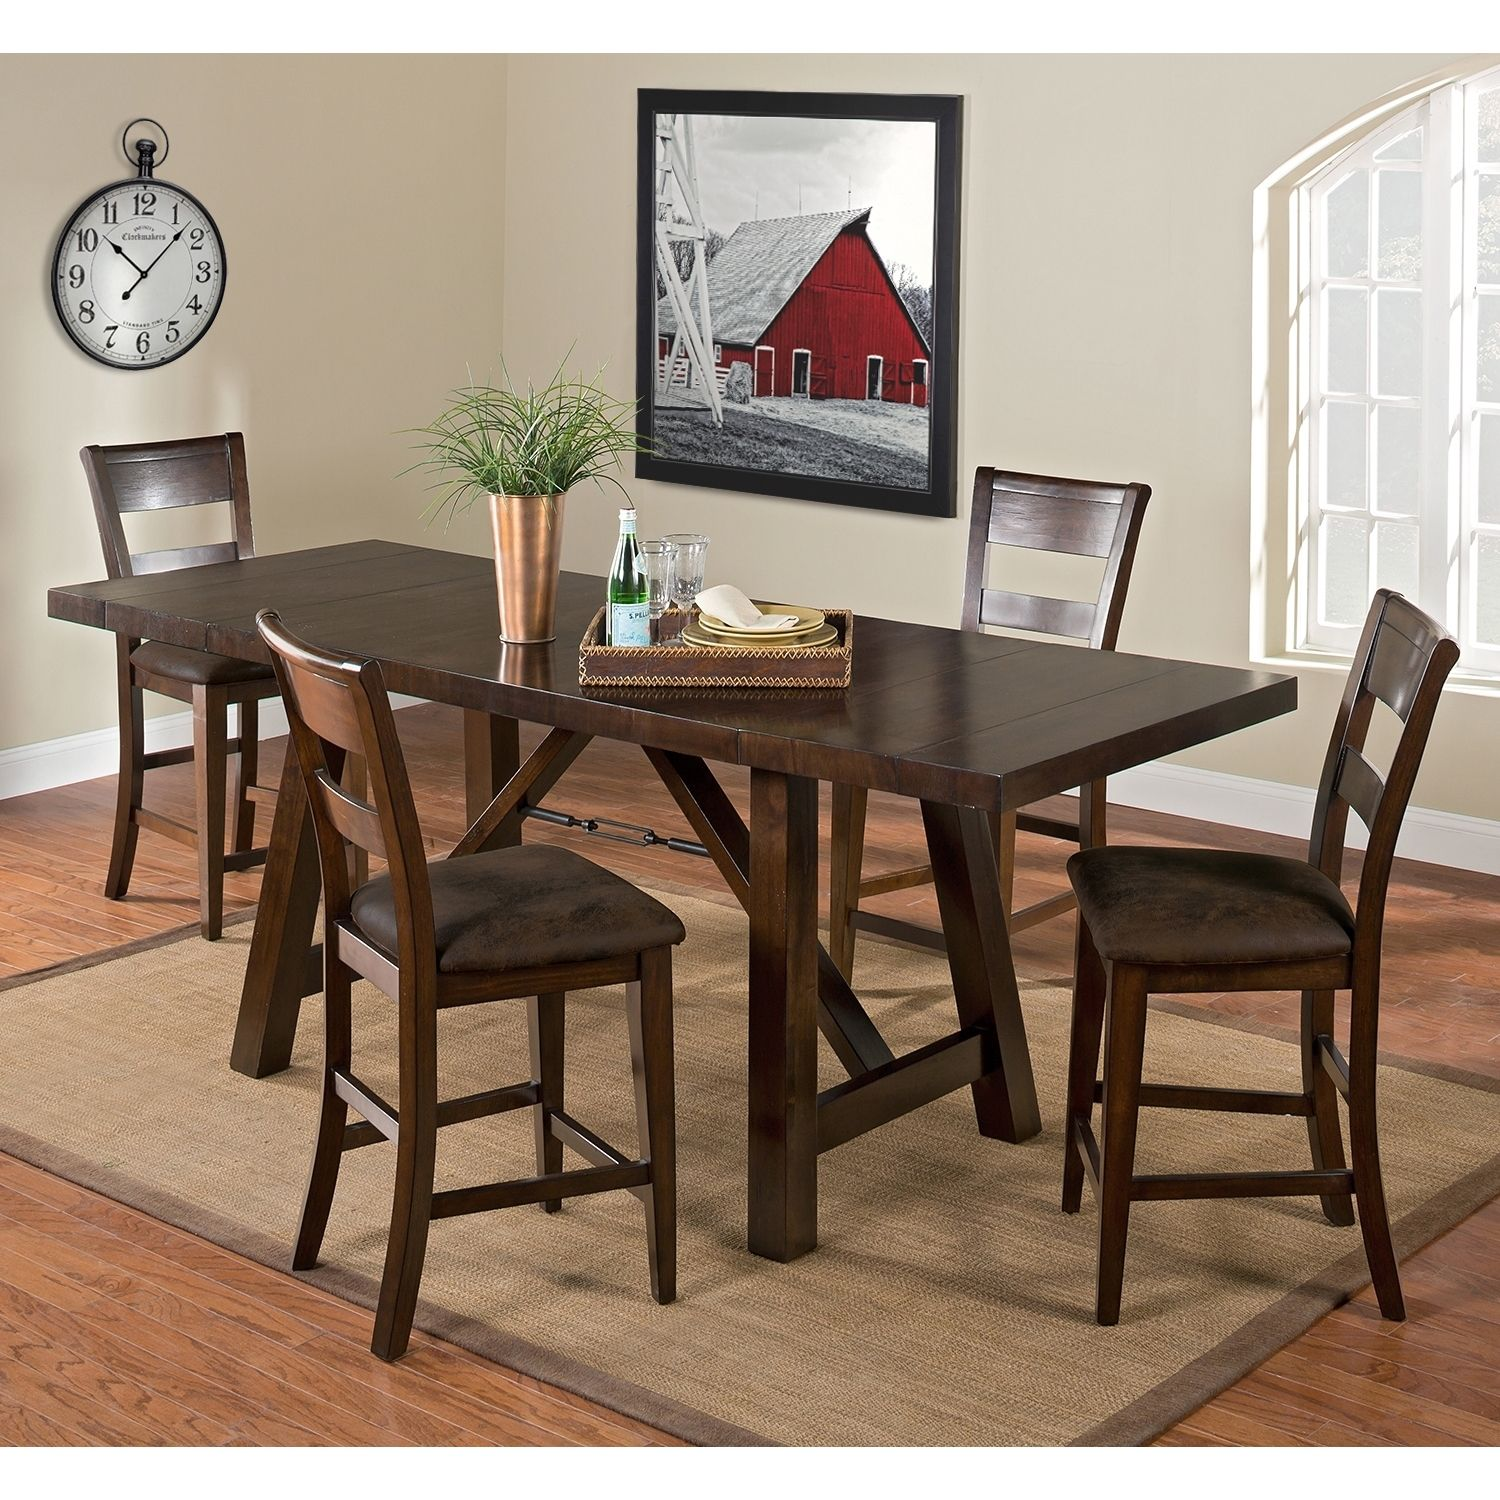 Everett Counter Height Table Value City Furniture 340 Table